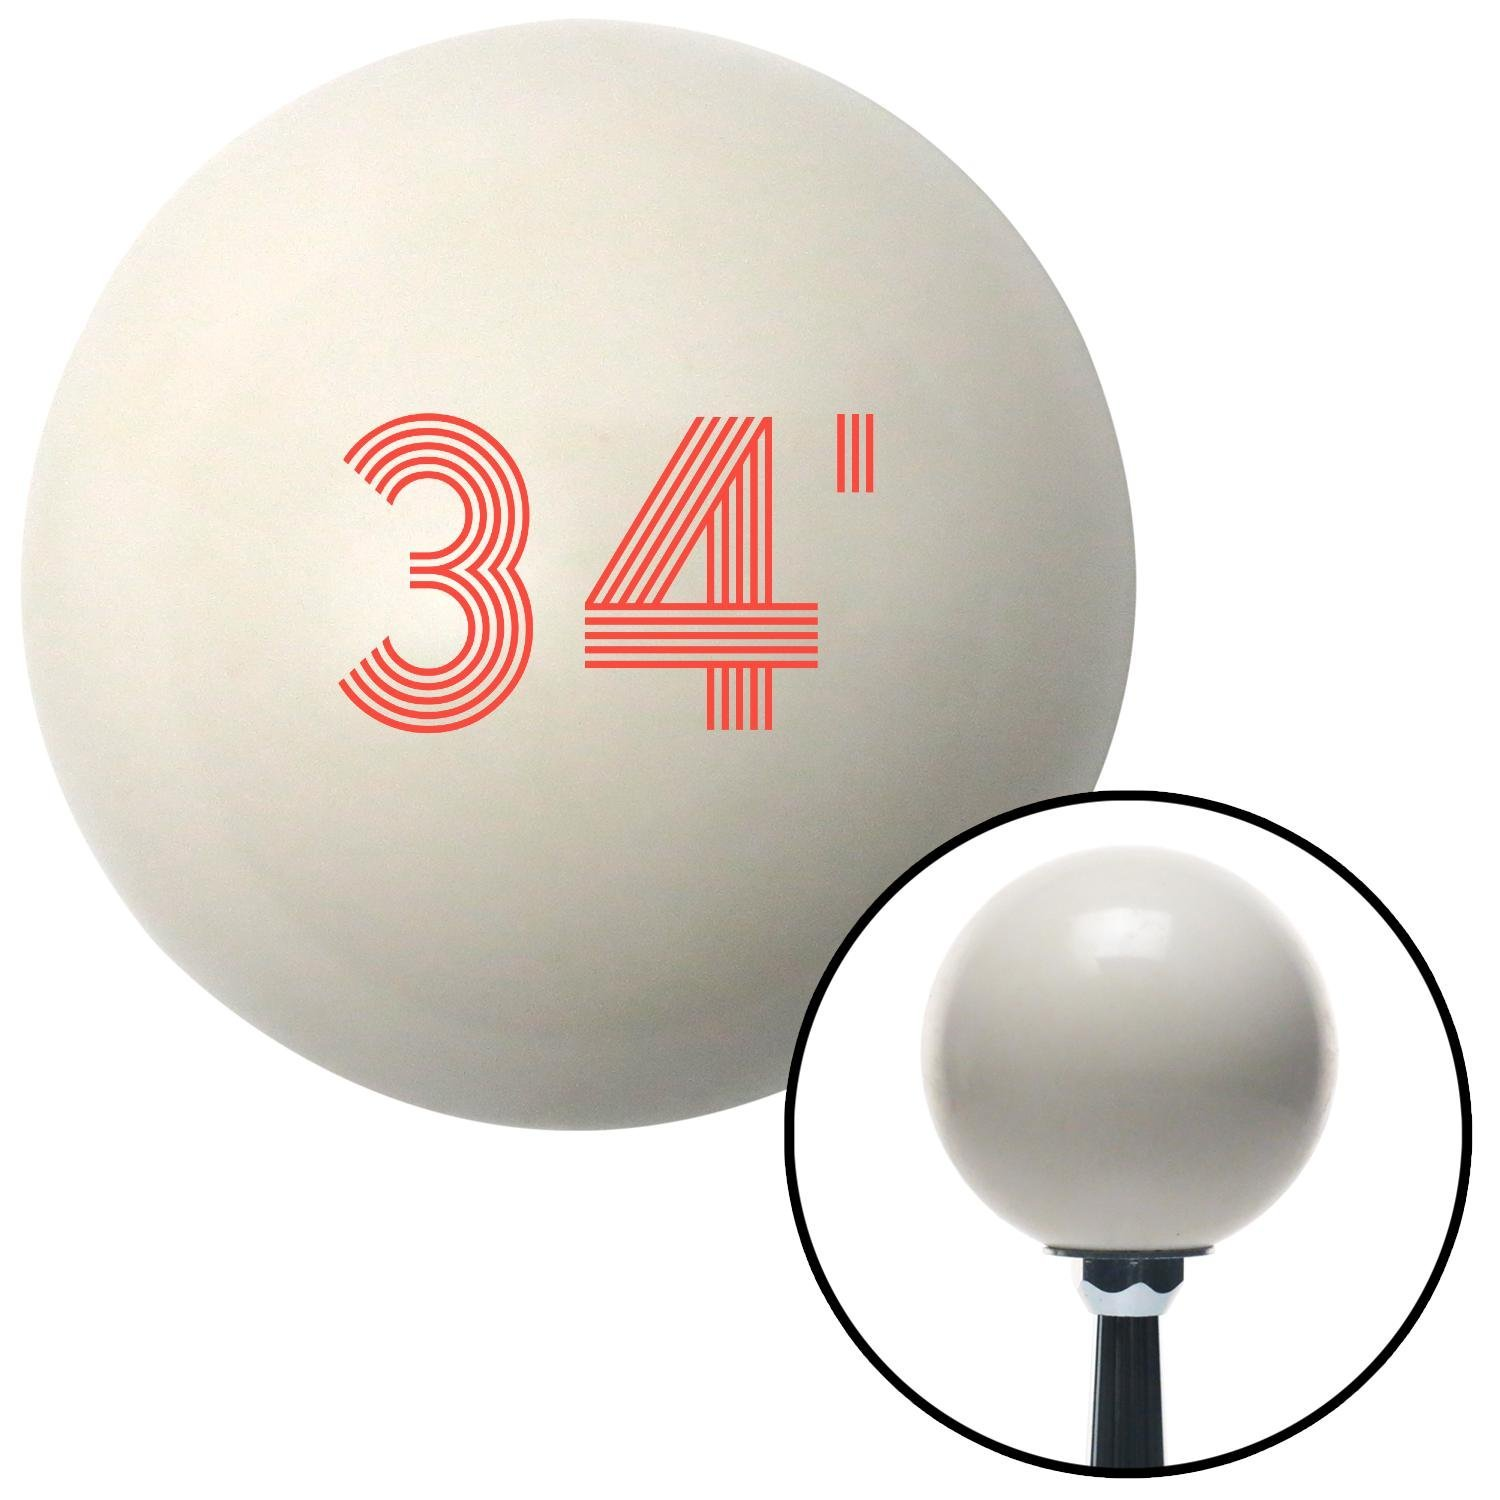 American Shifter 142306 Ivory Shift Knob with M16 x 1.5 Insert Red 34 Year Retro Series